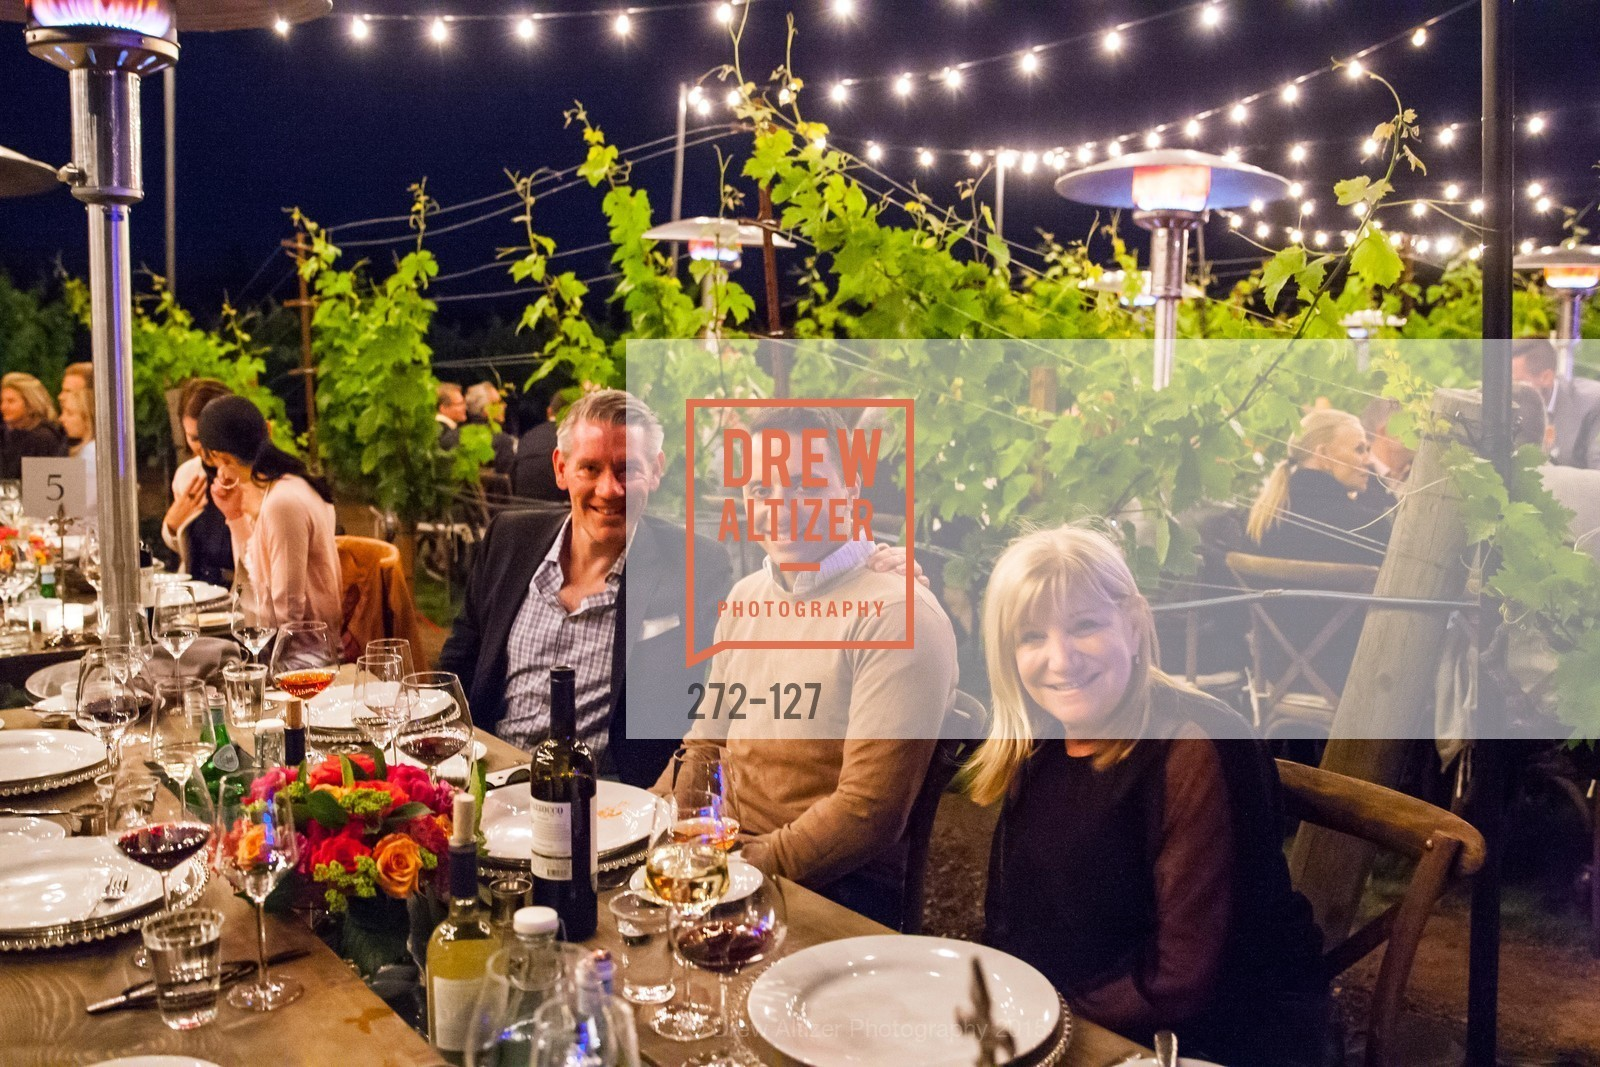 Extras, An Evening in the Vineyard hosted by JACK CALHOUN & TRENT NORRIS, May 22nd, 2015, Photo,Drew Altizer, Drew Altizer Photography, full-service event agency, private events, San Francisco photographer, photographer California